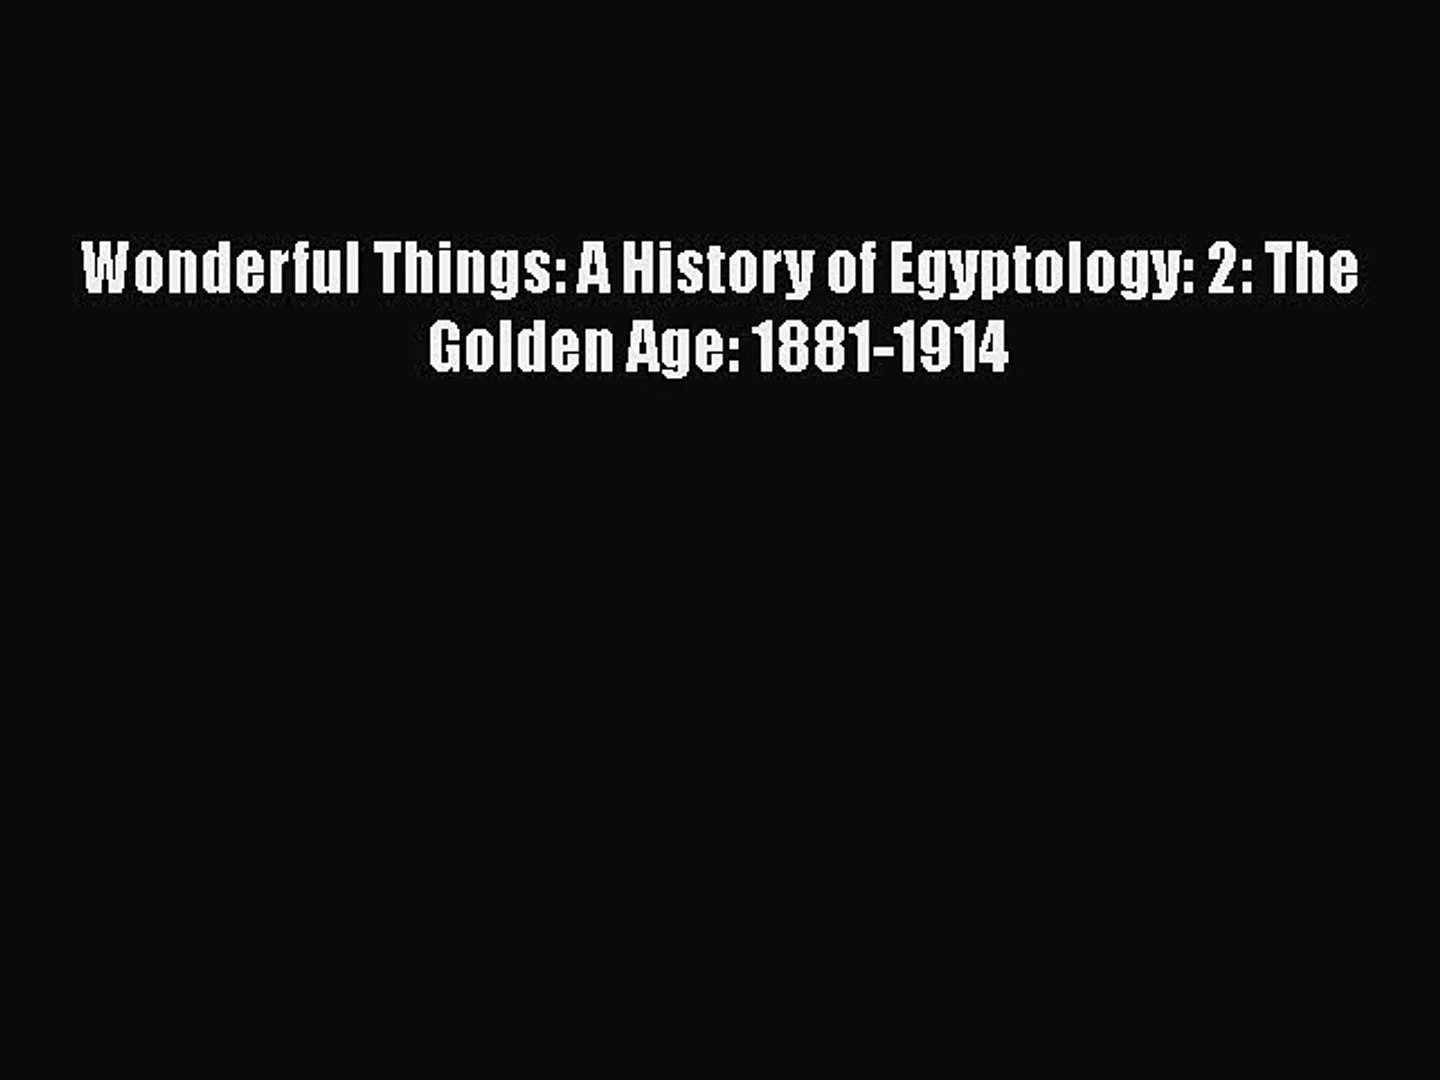 [Online PDF] Wonderful Things: A History of Egyptology: 2: The Golden Age: 1881-1914  Full